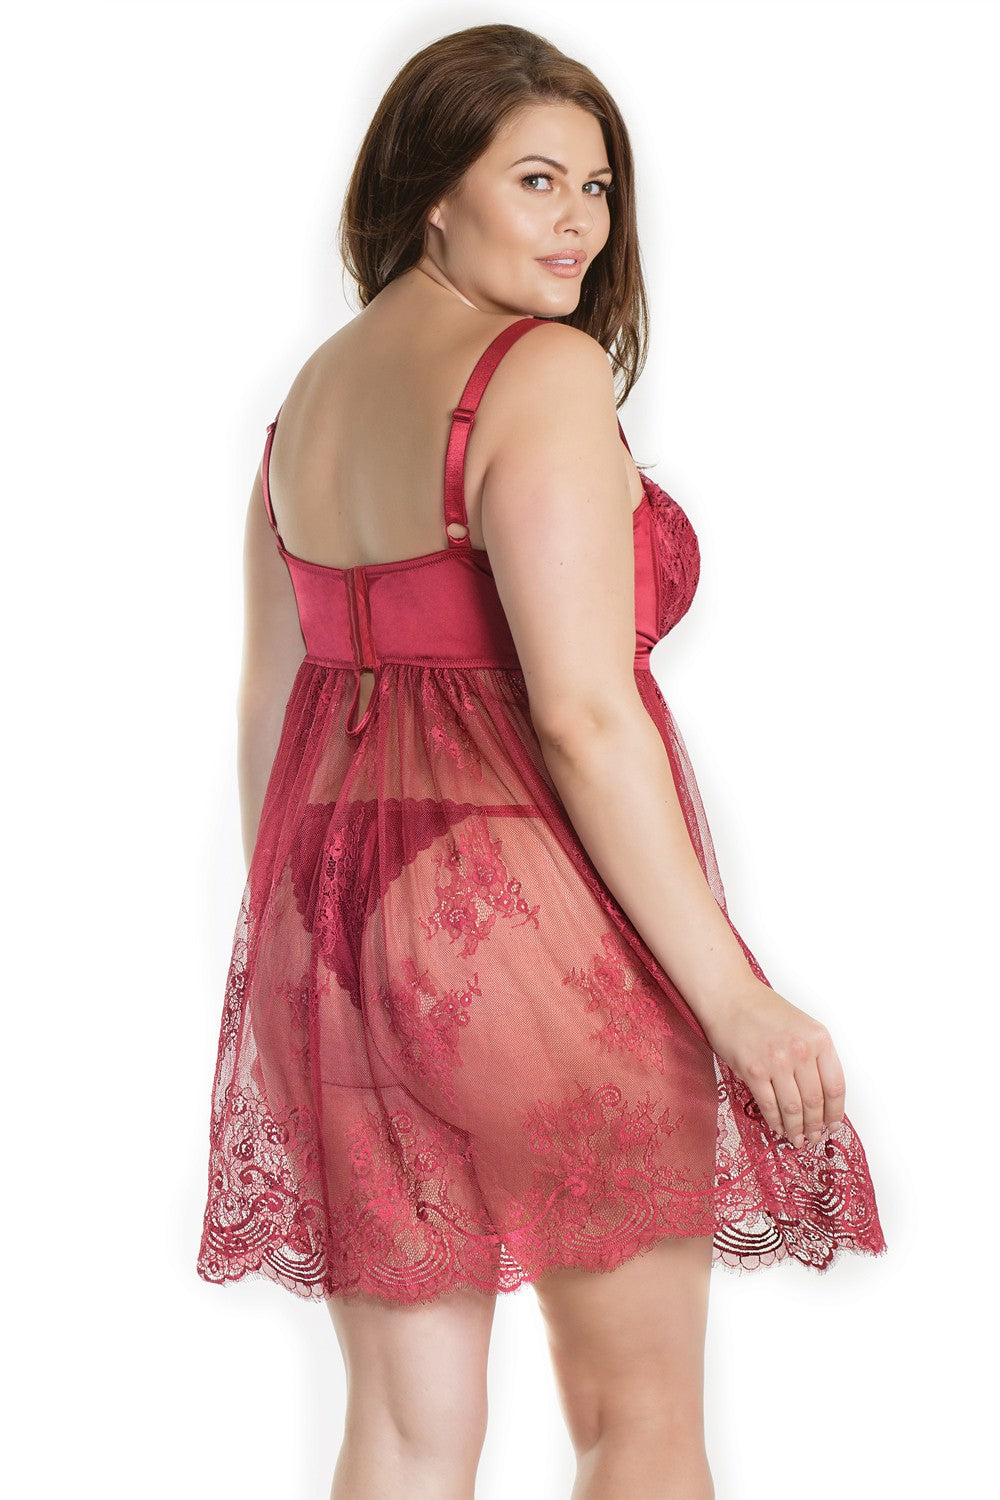 The Merlot and Lace Babydoll